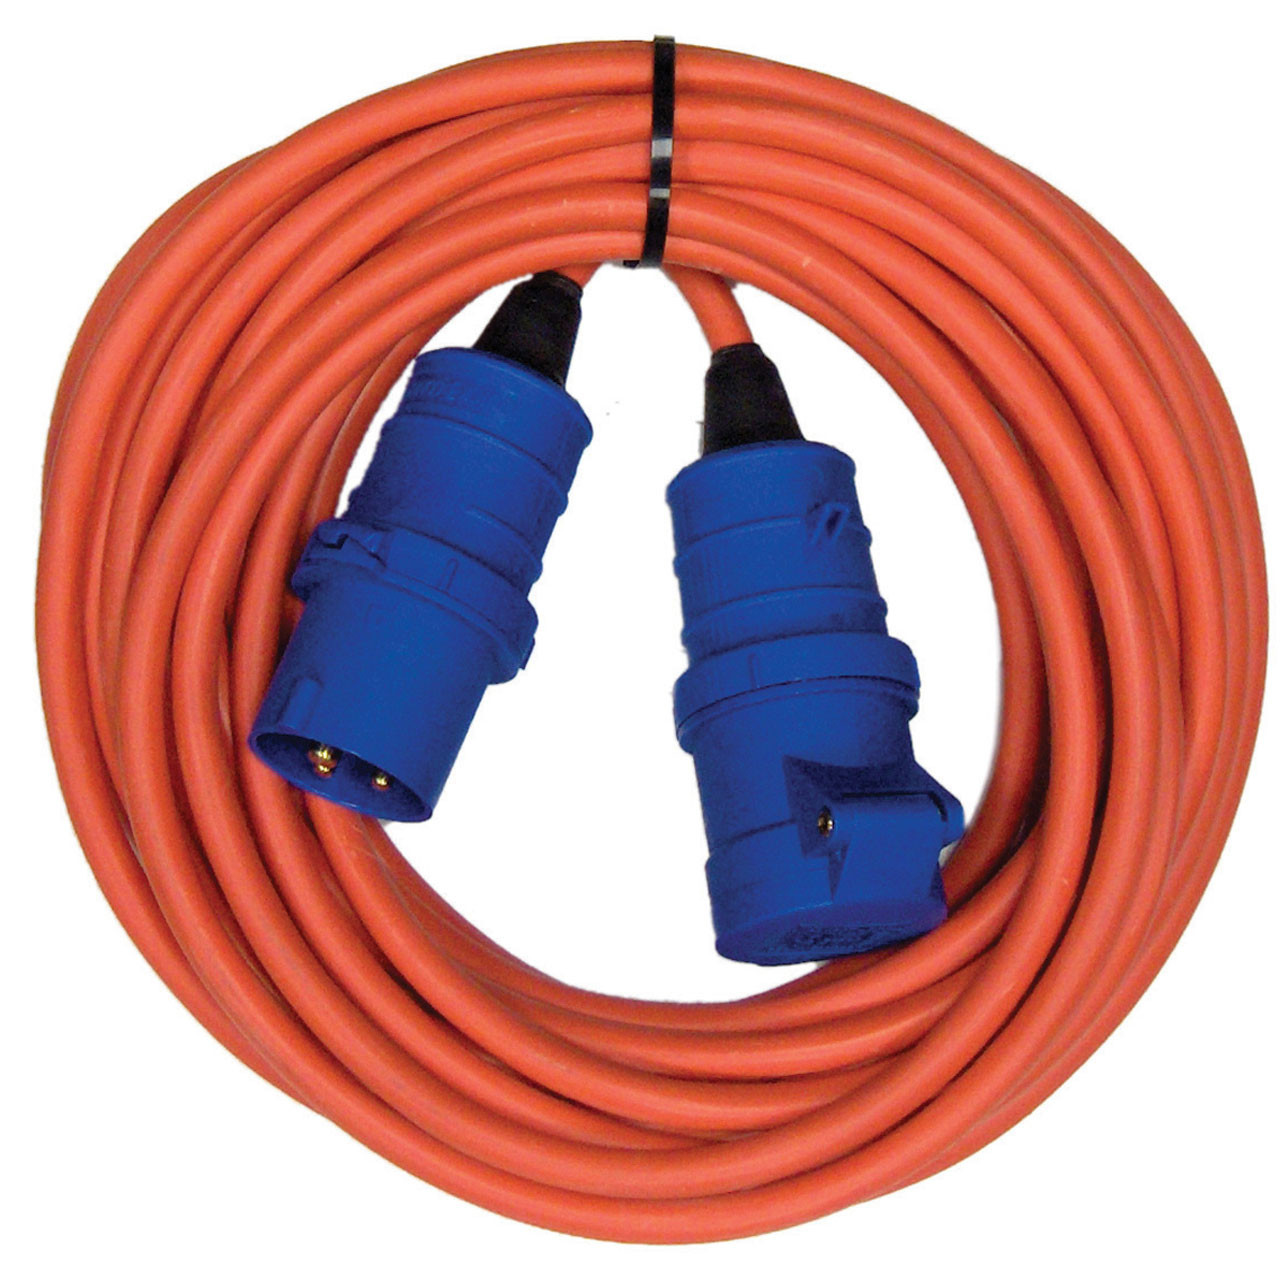 10m Mains site lead